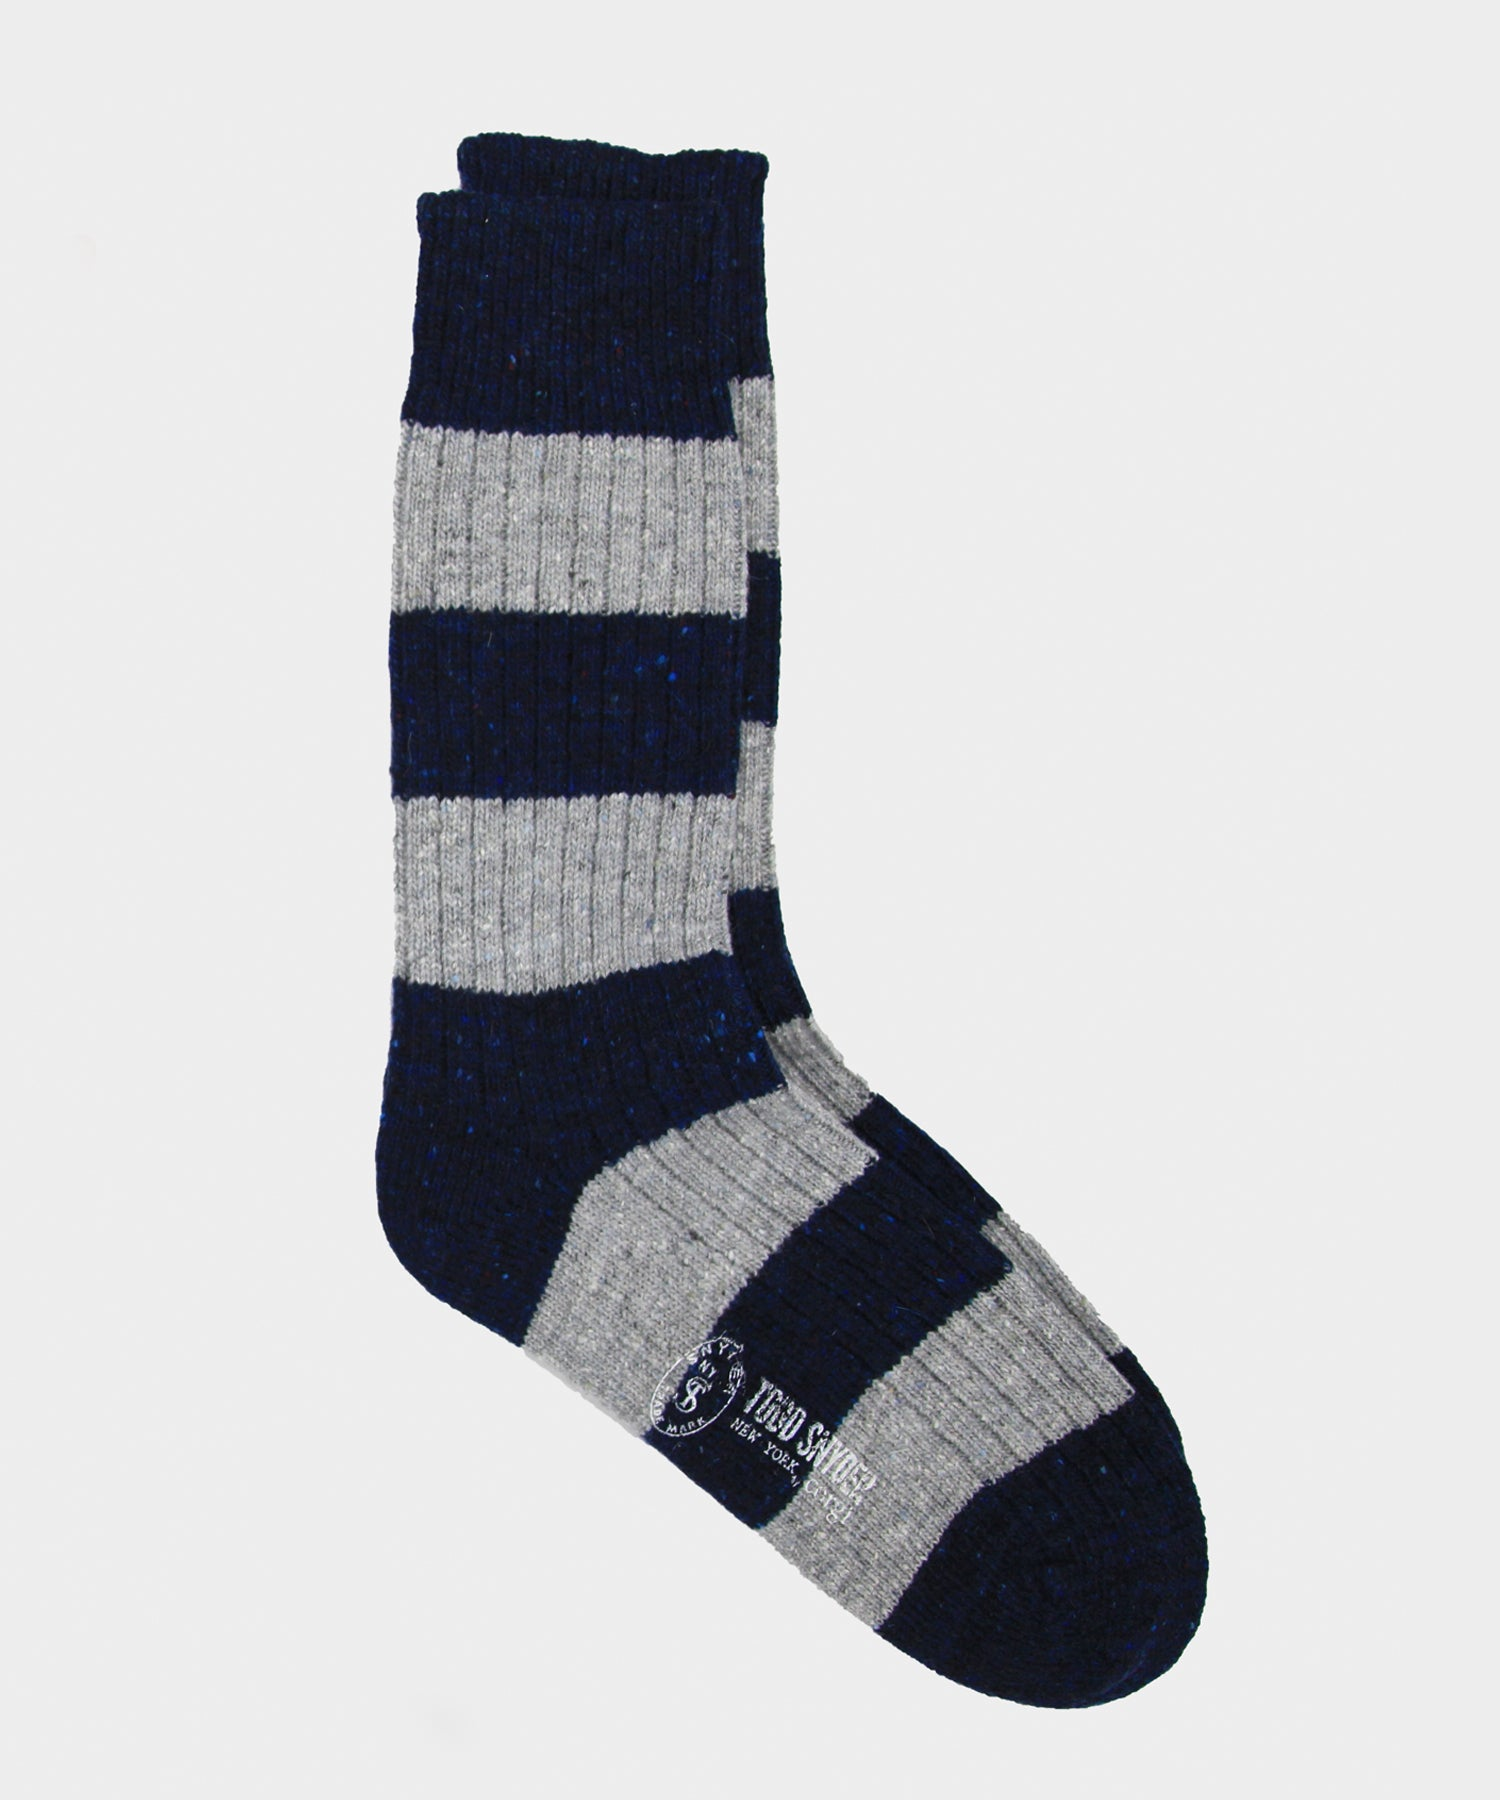 Corgi Striped Irish Donegal Wool Socks in Ink/silver